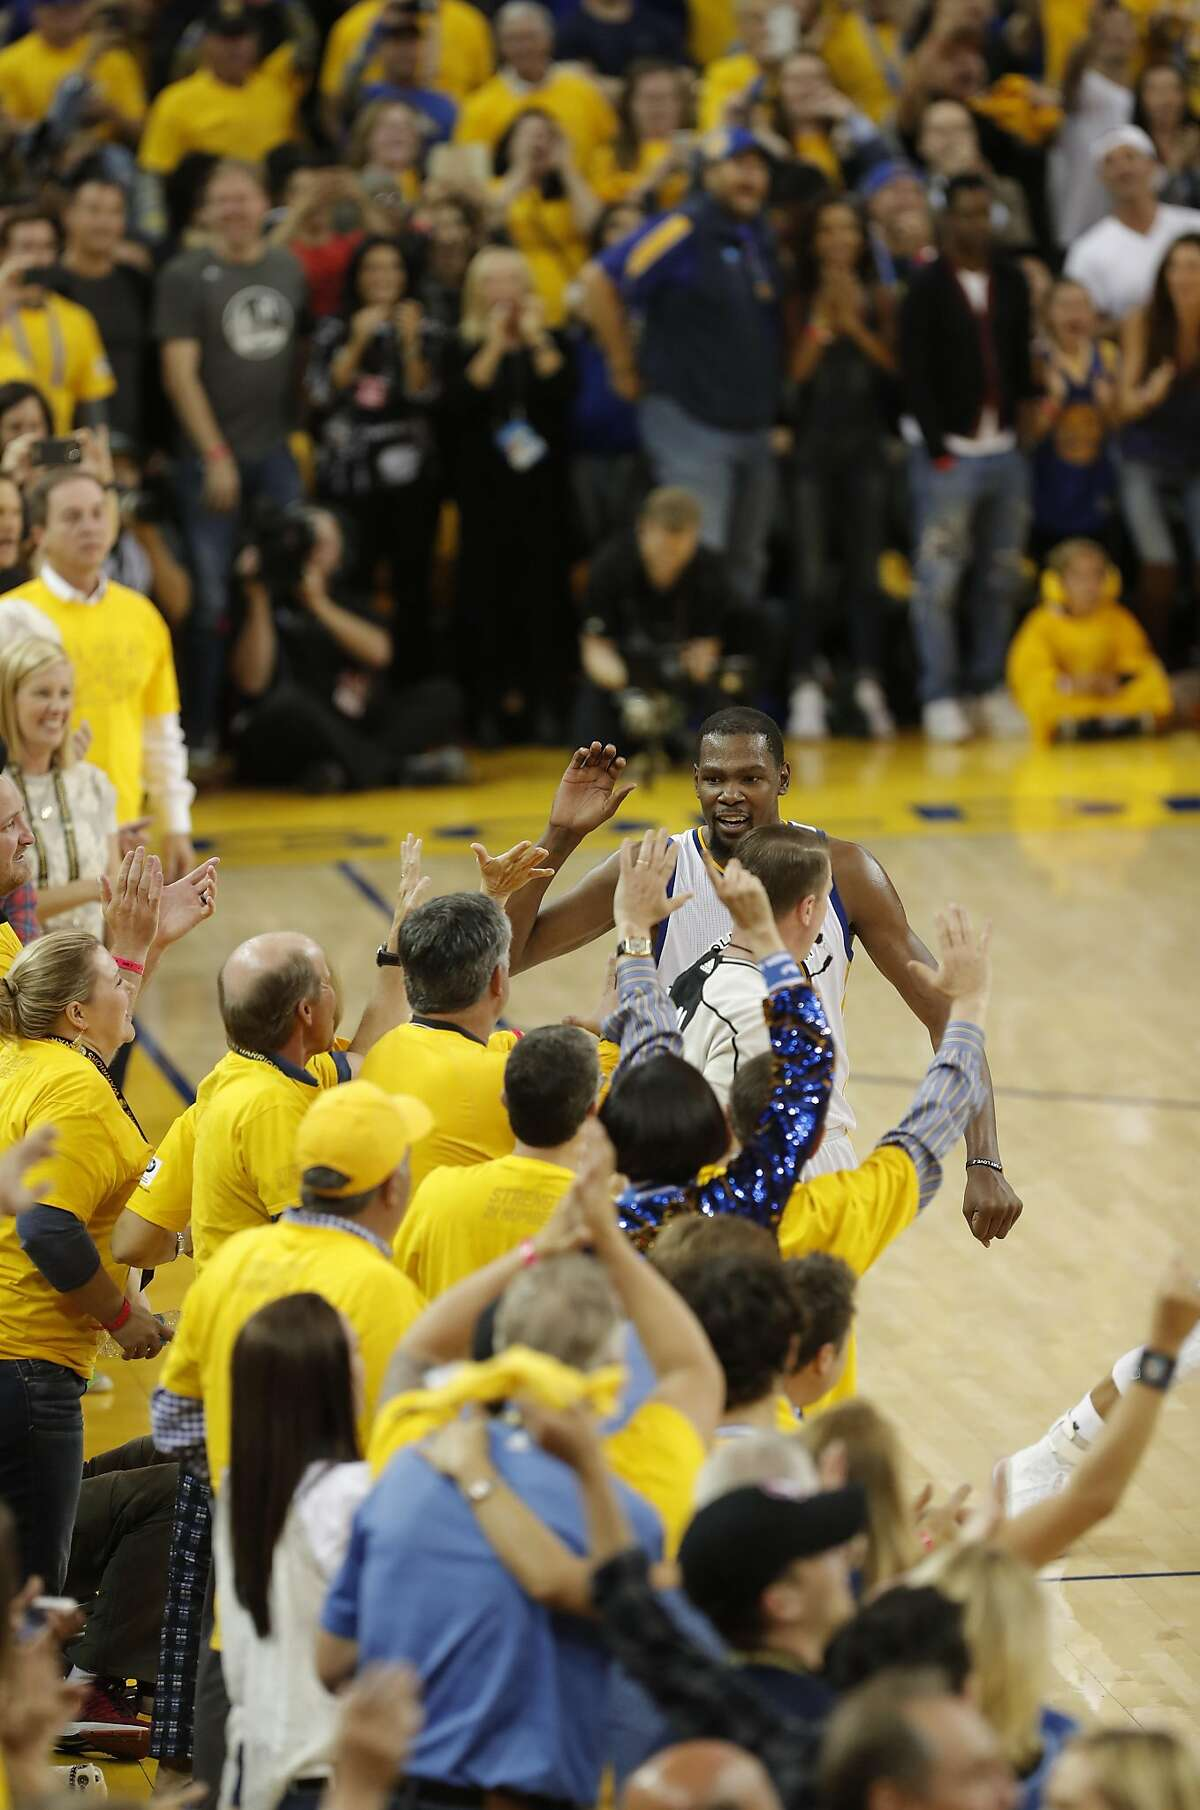 WArriors' Kevin Durant celebrates the victory with the fans as the Golden State Warriors beat the Cleveland Cavaliers 129-120 in game 5 of the NBA finals to win the NBA championship at Oracle Arena in Oakland, Ca., on Monday June 12, 2017.